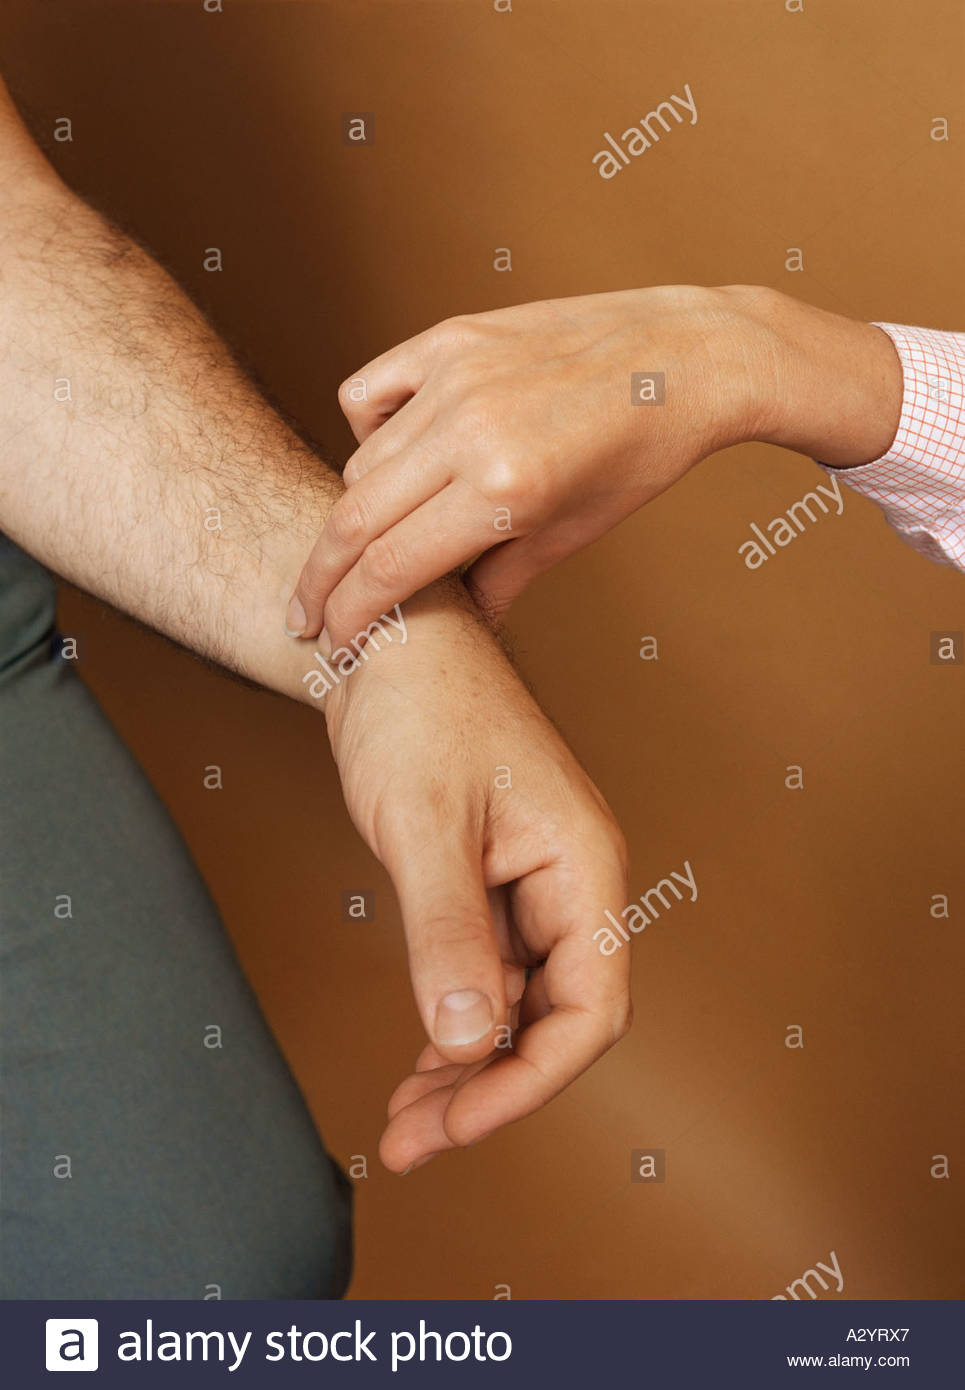 Taking a pulse - Stock Image